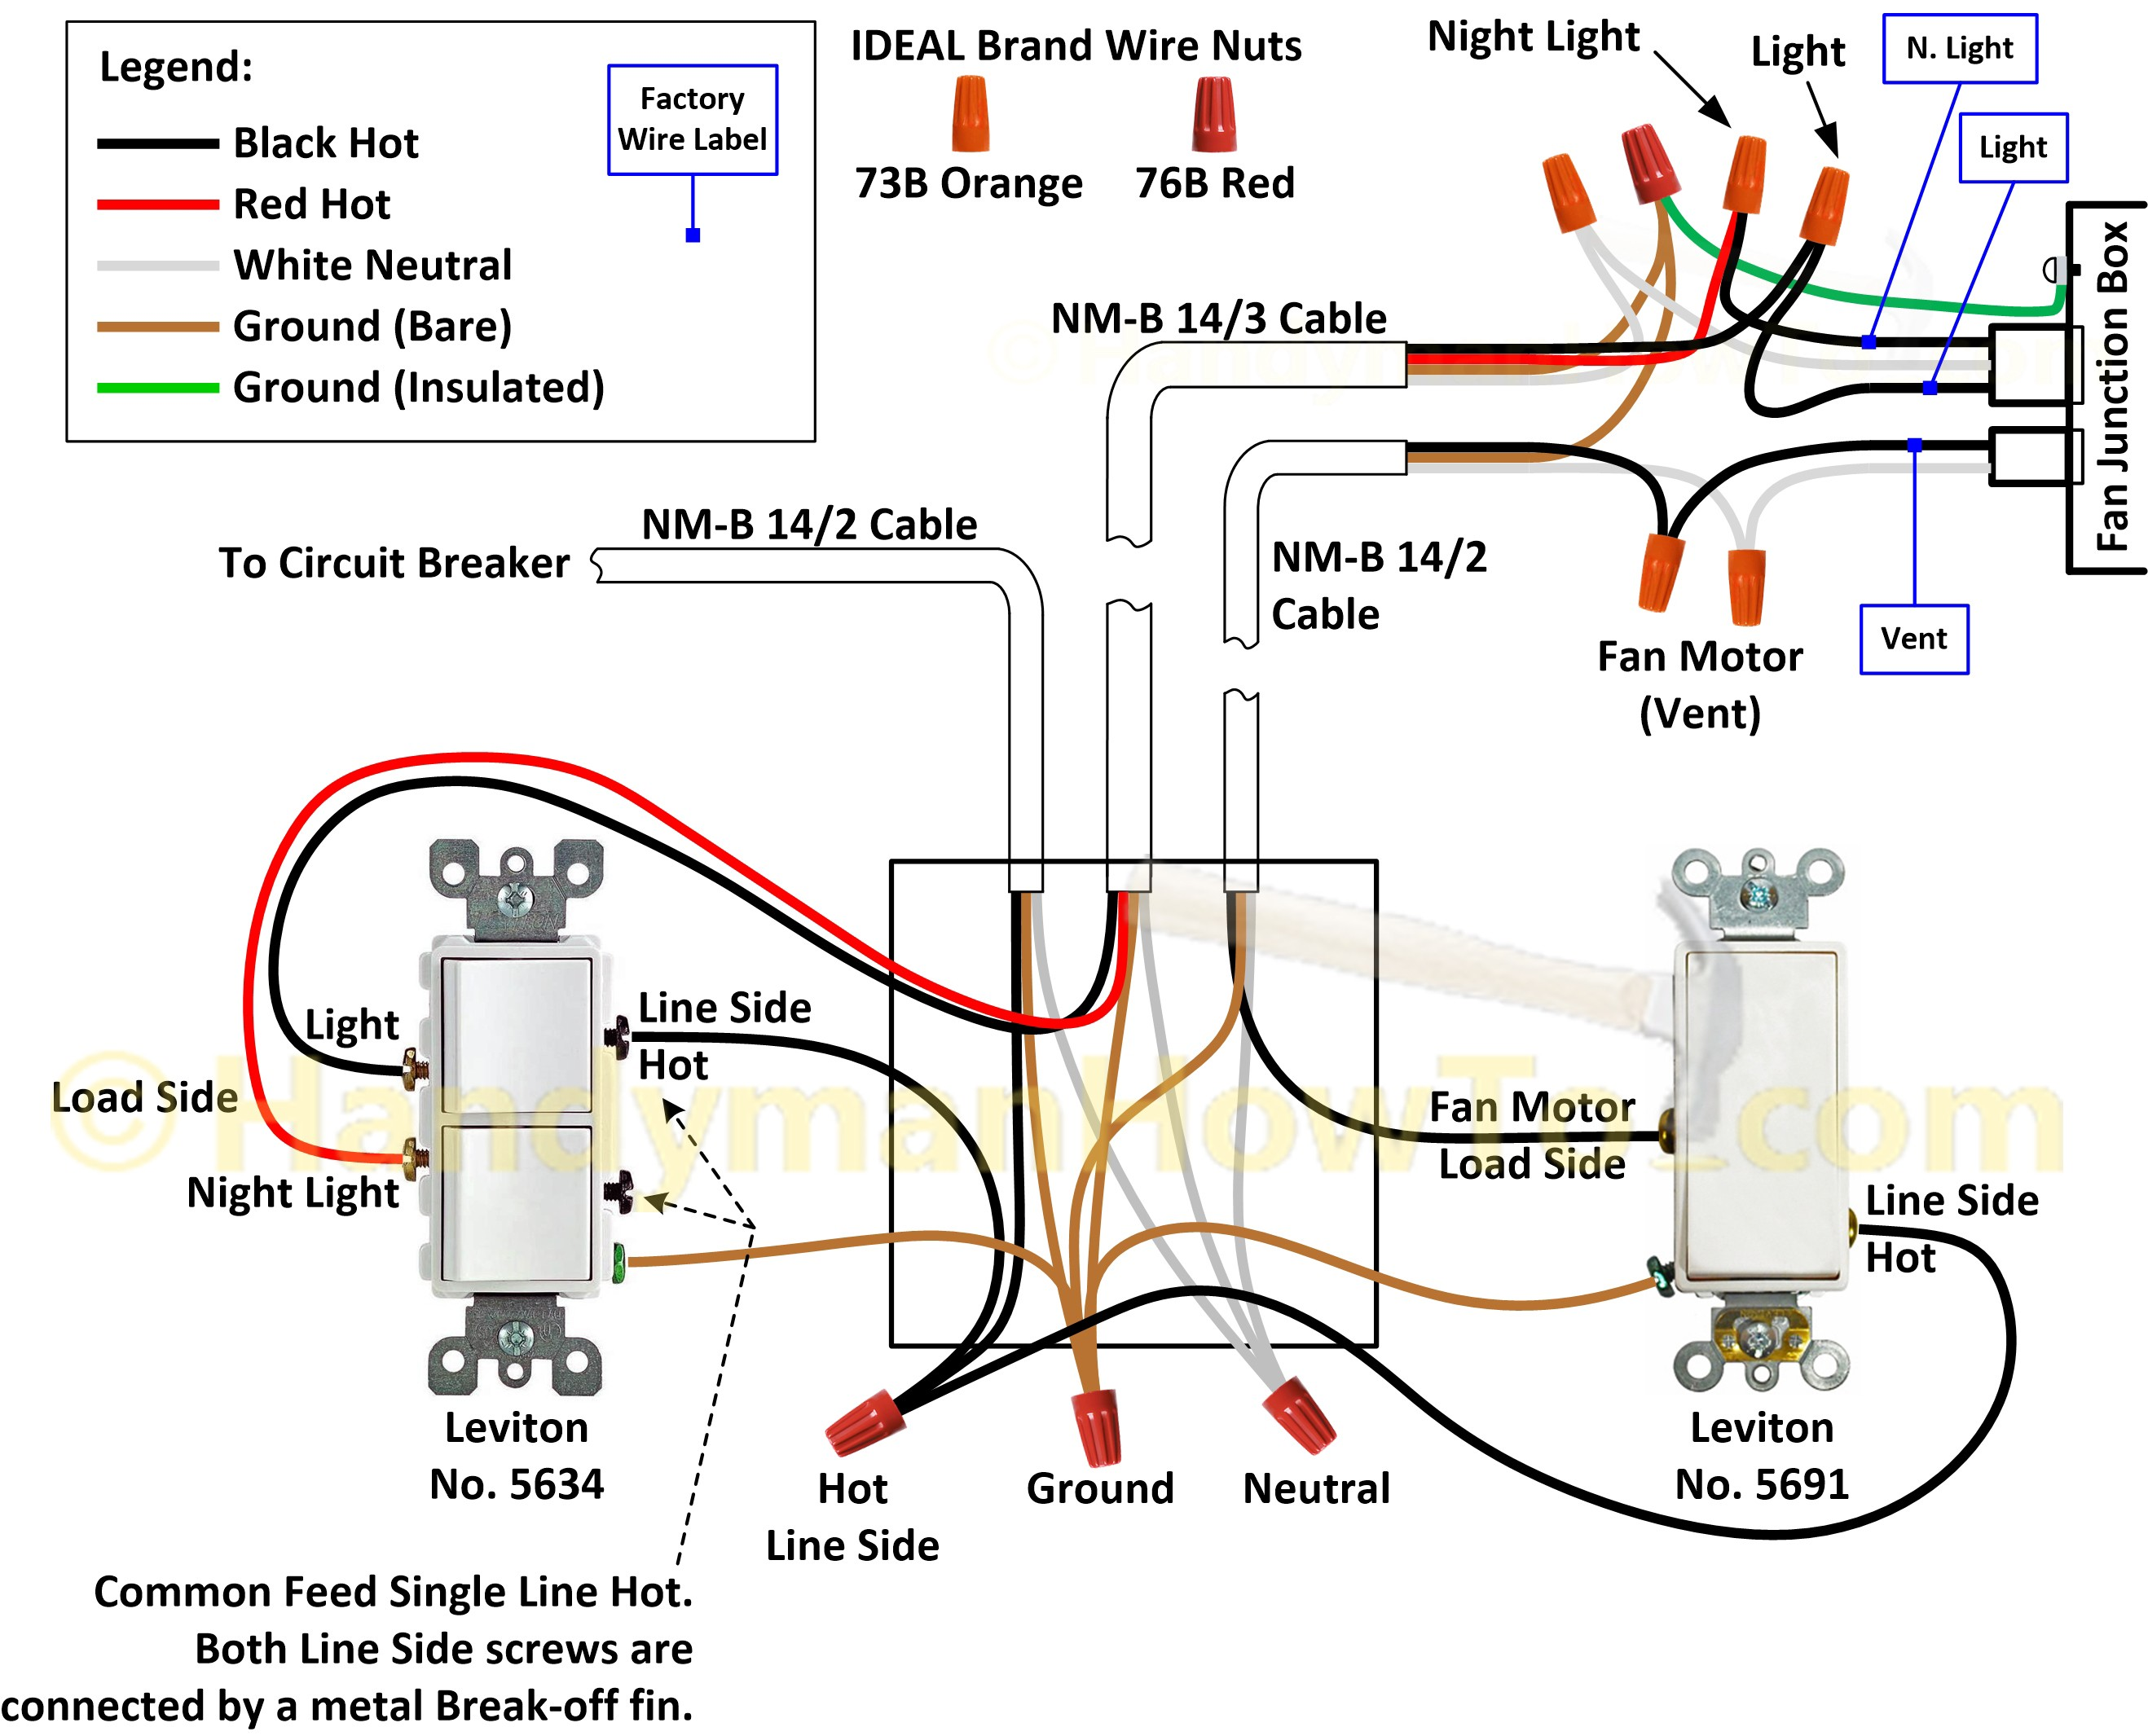 3 Way Dimmer Switch Wiring Diagram Wiring Diagram for Ceiling Fan Light Switch Lights Coachedby Of 3 Way Dimmer Switch Wiring Diagram